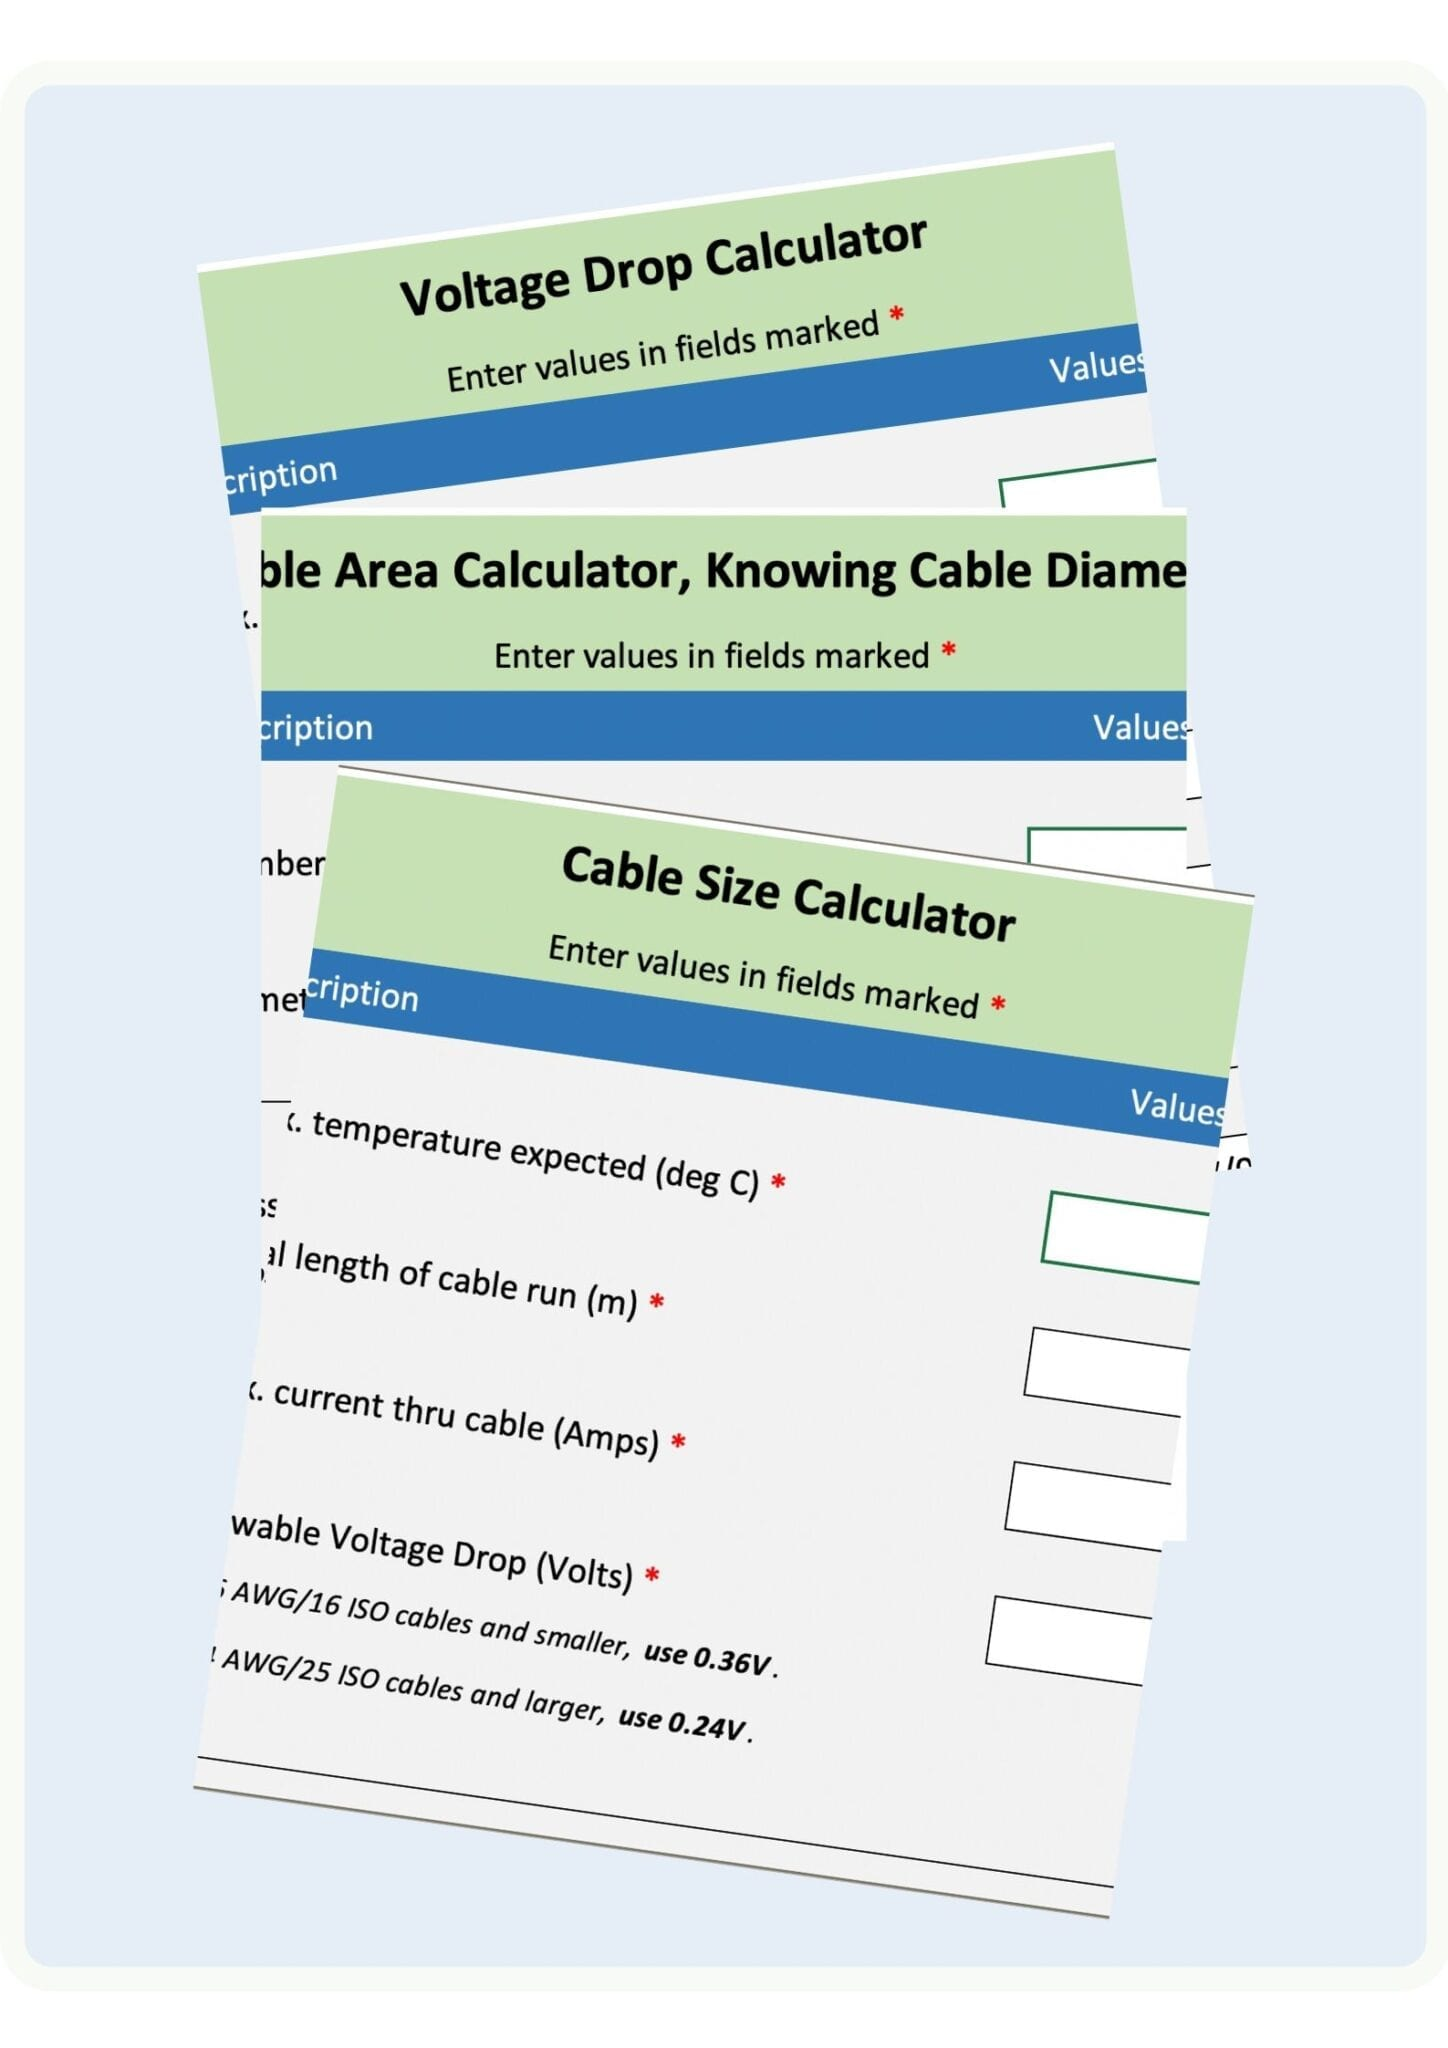 Download your free 3 Cable Sizing Calculators. Avoid expensive mistakes.